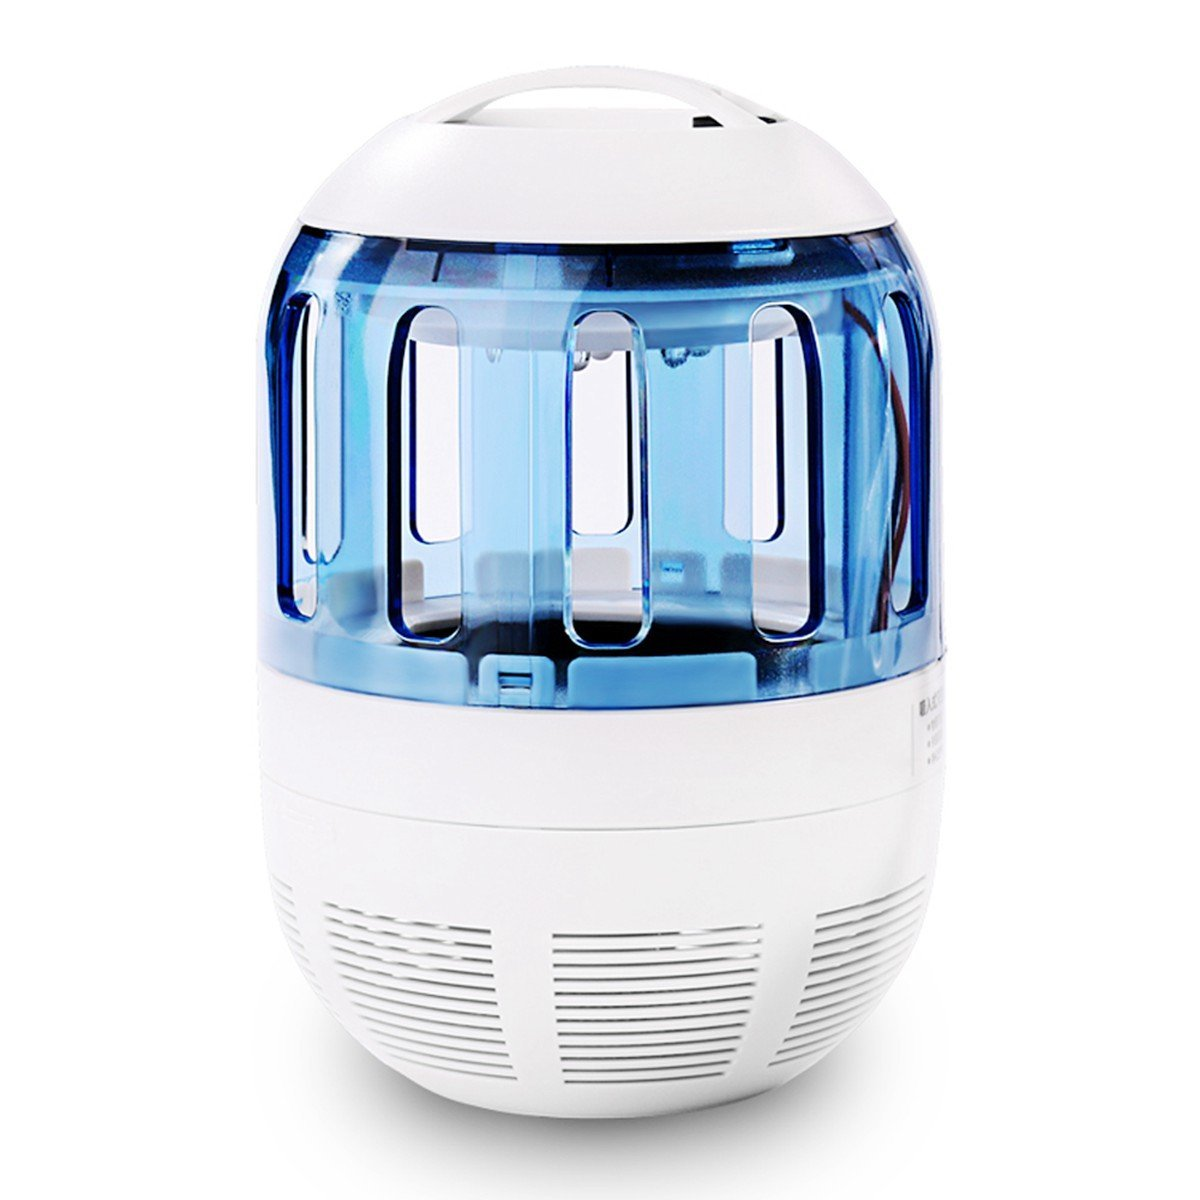 Top 10 Best Mosquito Killer Machines Review for Yard and Garden_2